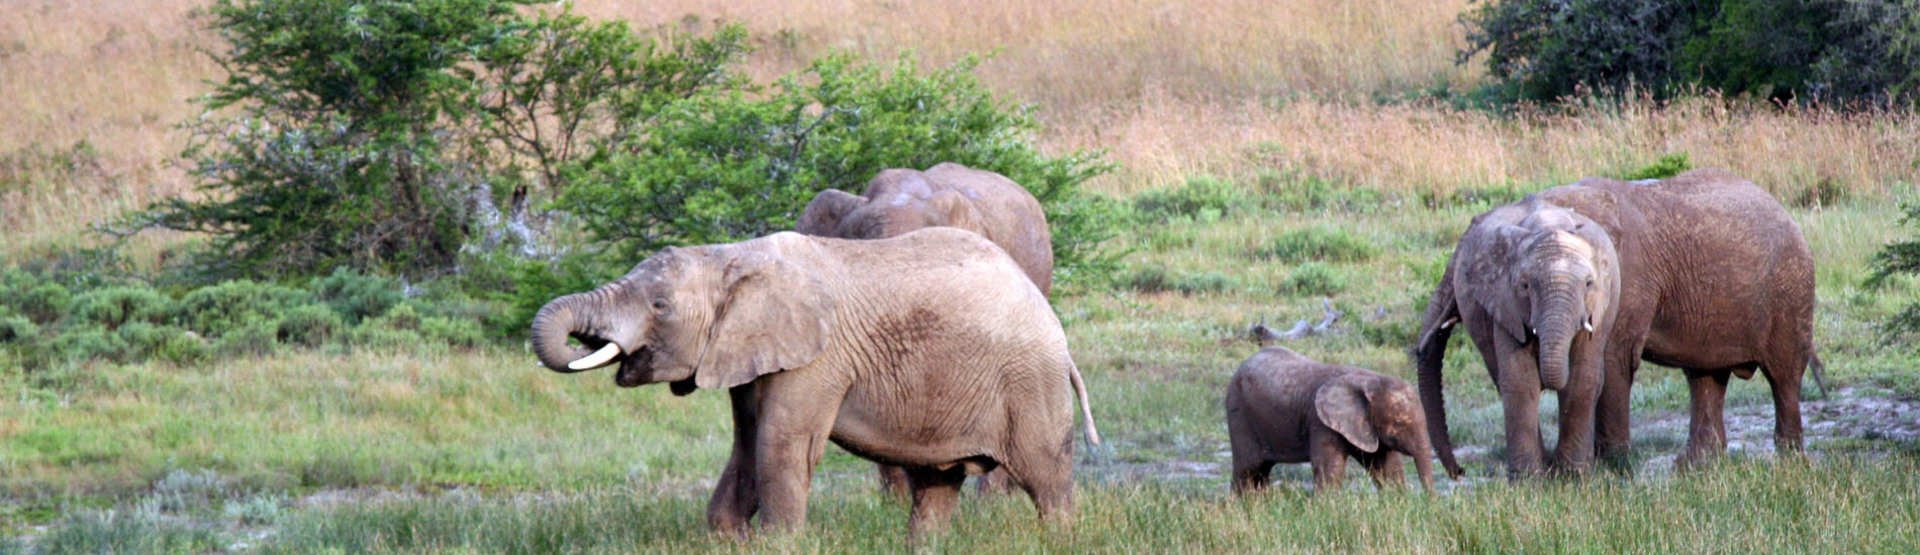 Hlosi Game Lodge Amakhala Game Reserve Eastern Cape Elephants